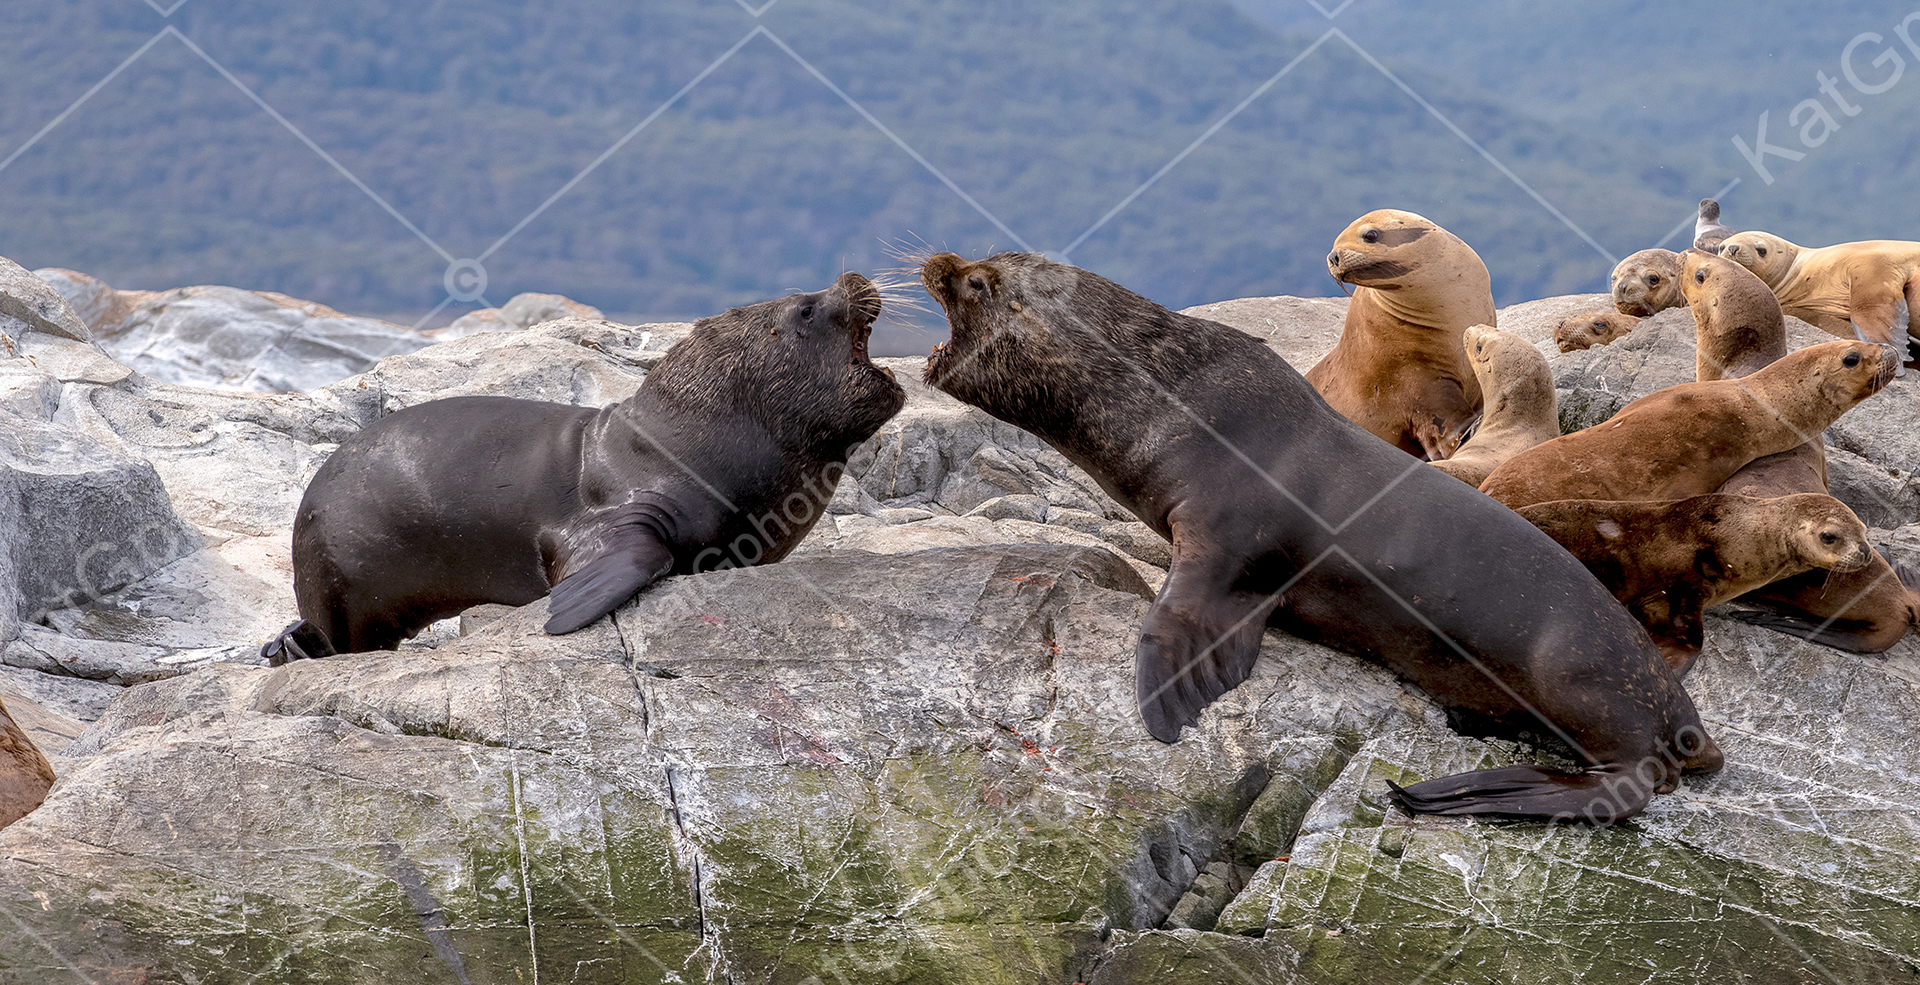 fur seals, seal, seals, wild,  lindbladexp, natgeo, perfect, nature,  animal captures, beautiful, ocean, sea, Antarctica